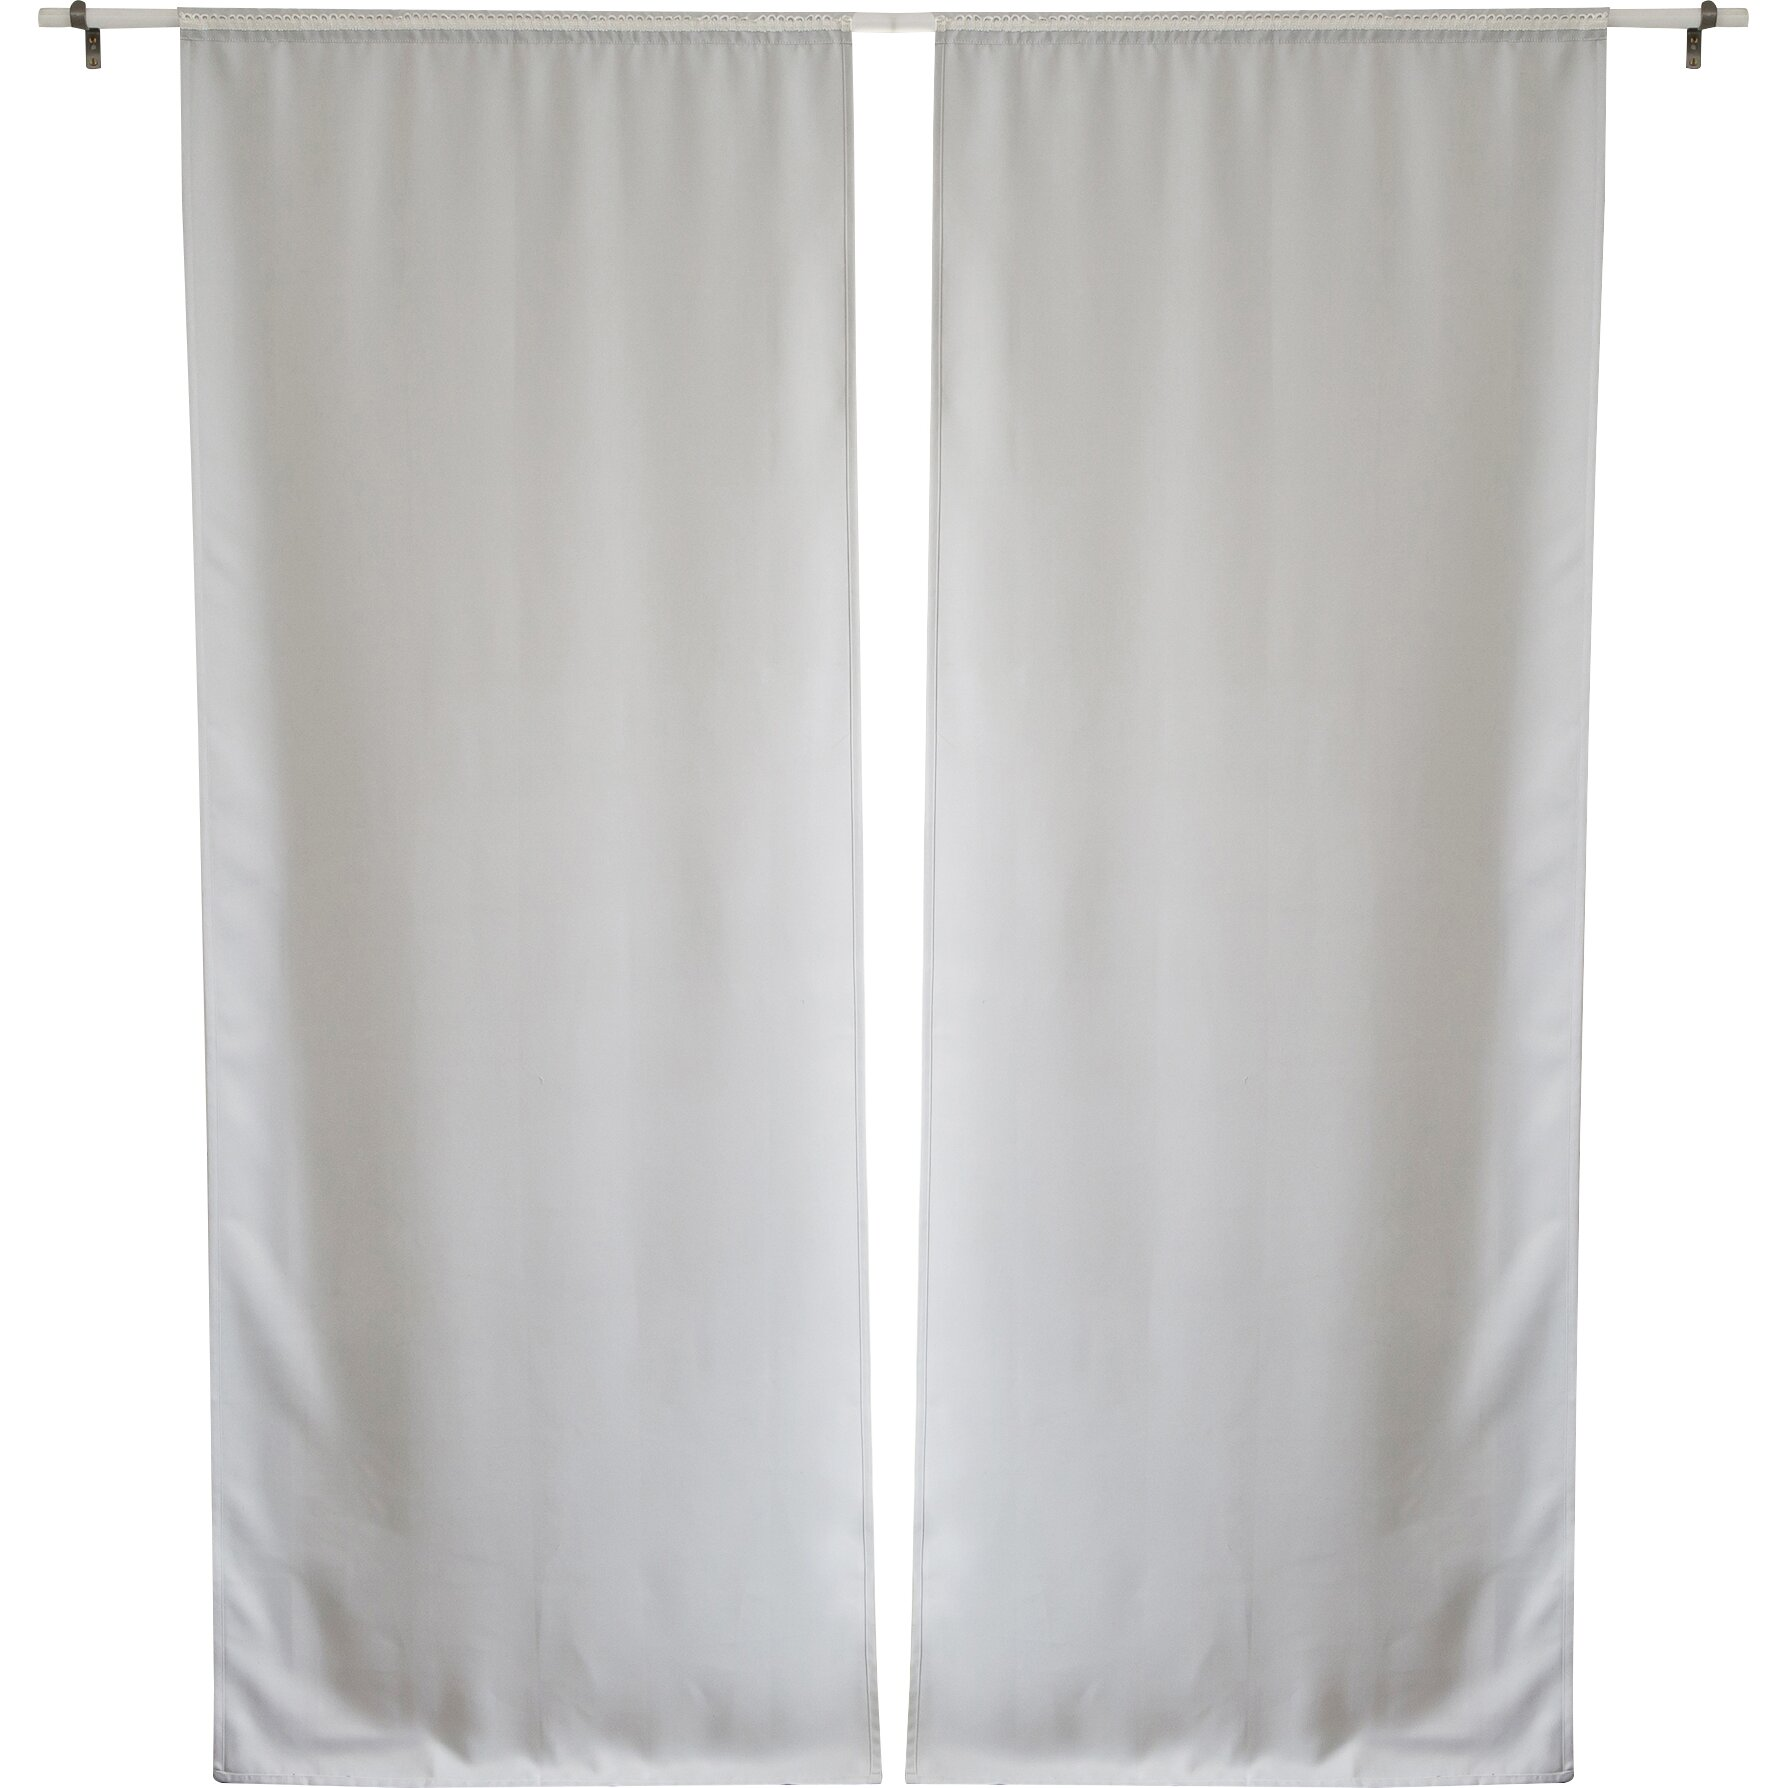 Best Home Fashion Inc Blackout Thermal Curtain Panel Liner